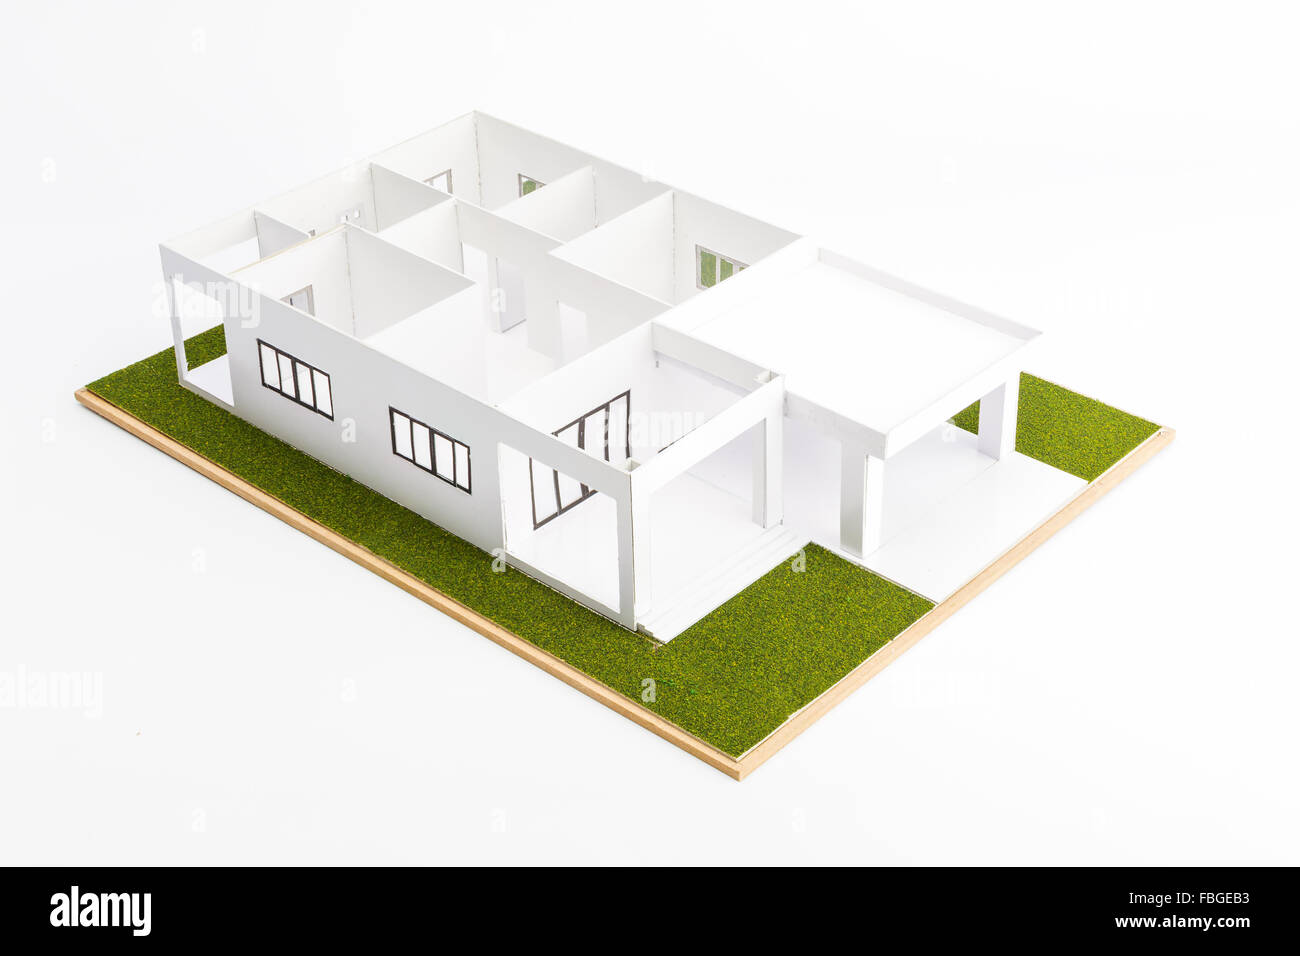 Architecture models on show inside. - Stock Image